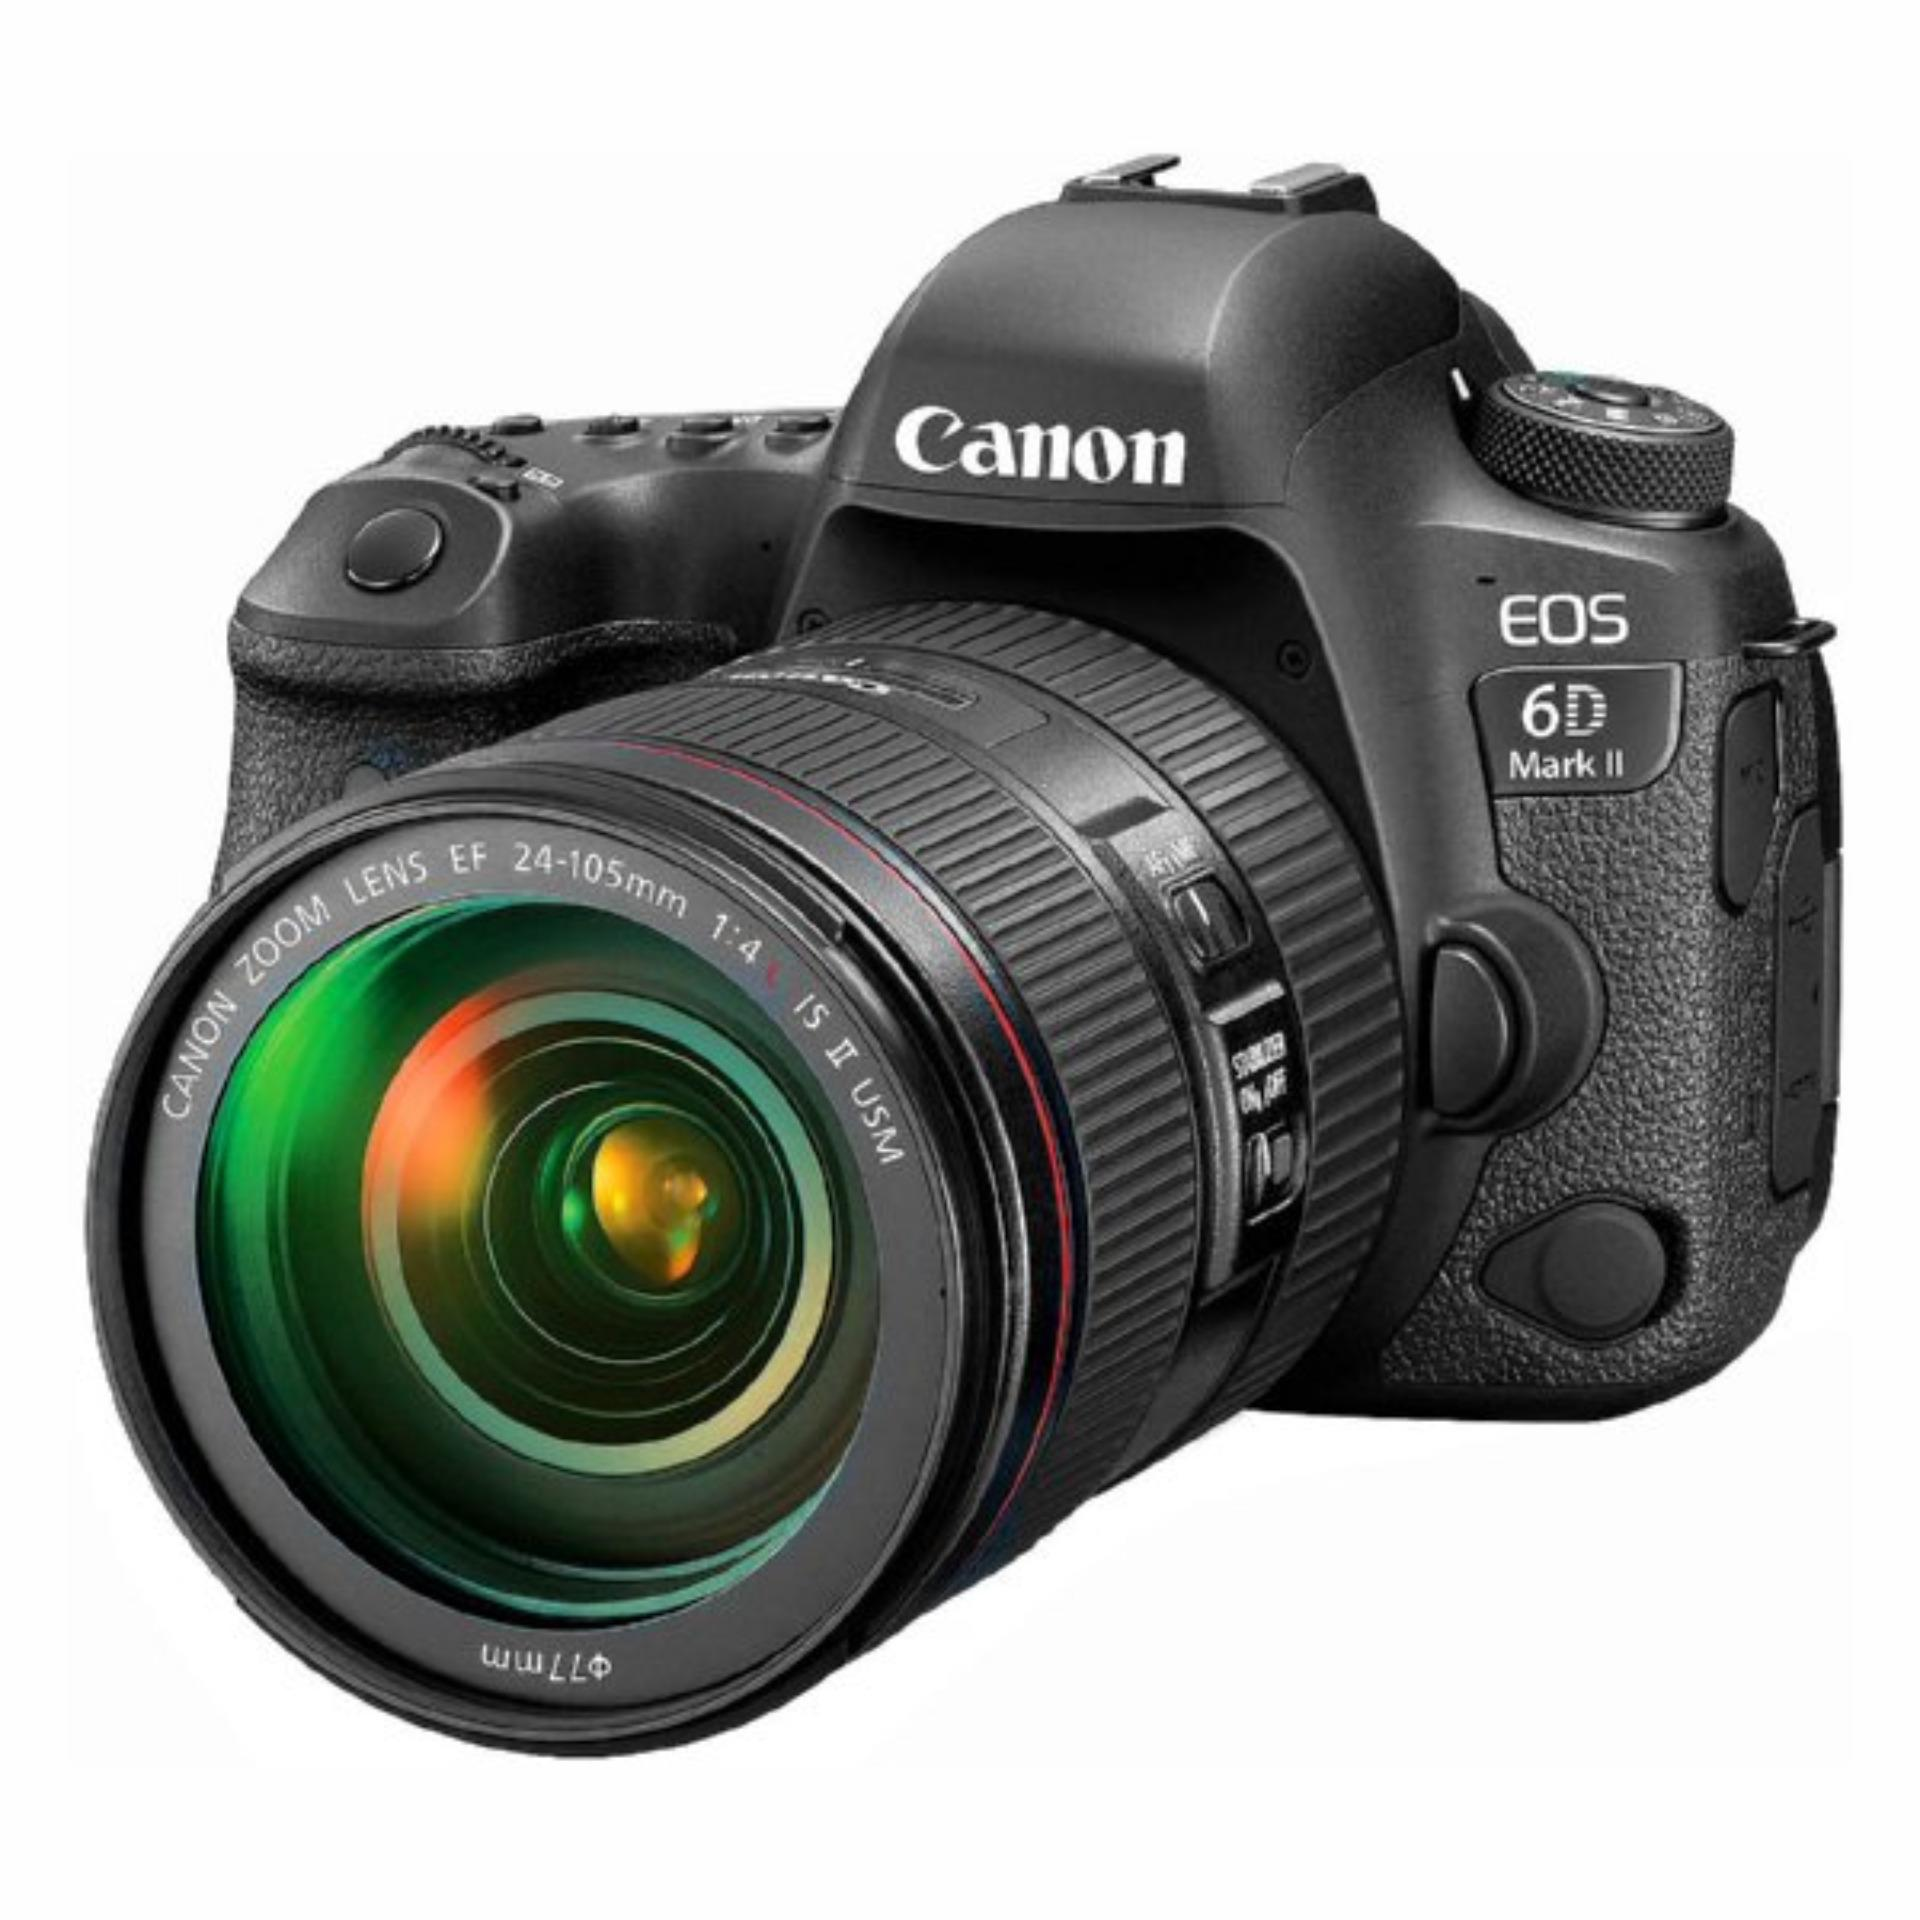 Canon EOS 6D Mark II Camera + EF 24-105mm f/4L IS II USM Lens